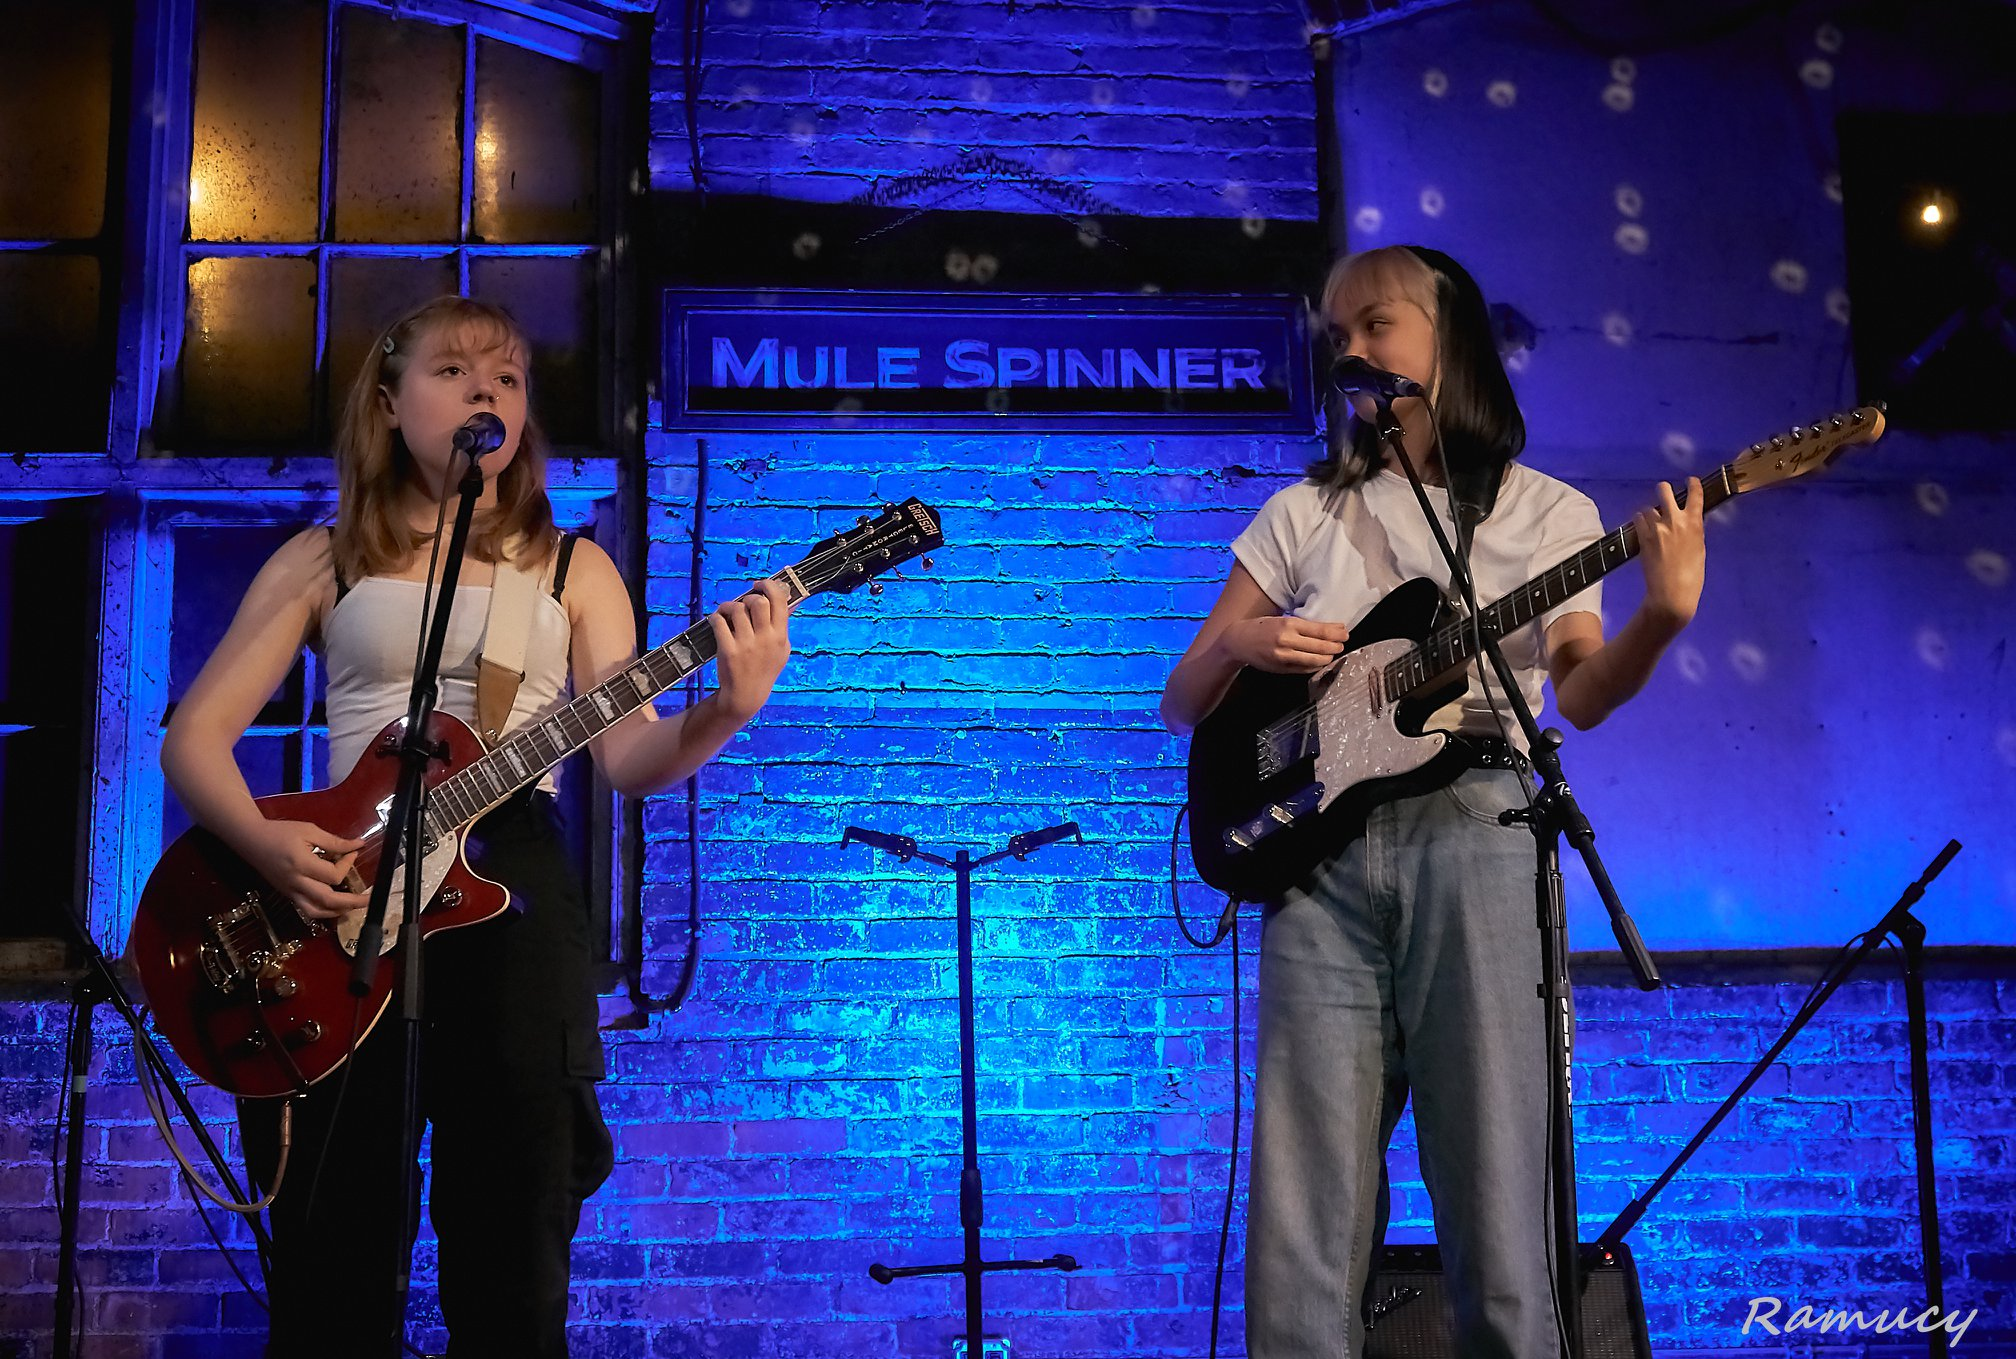 Moscow Apartment performing at The Mule Spinner. Photo by Don Gleeson.